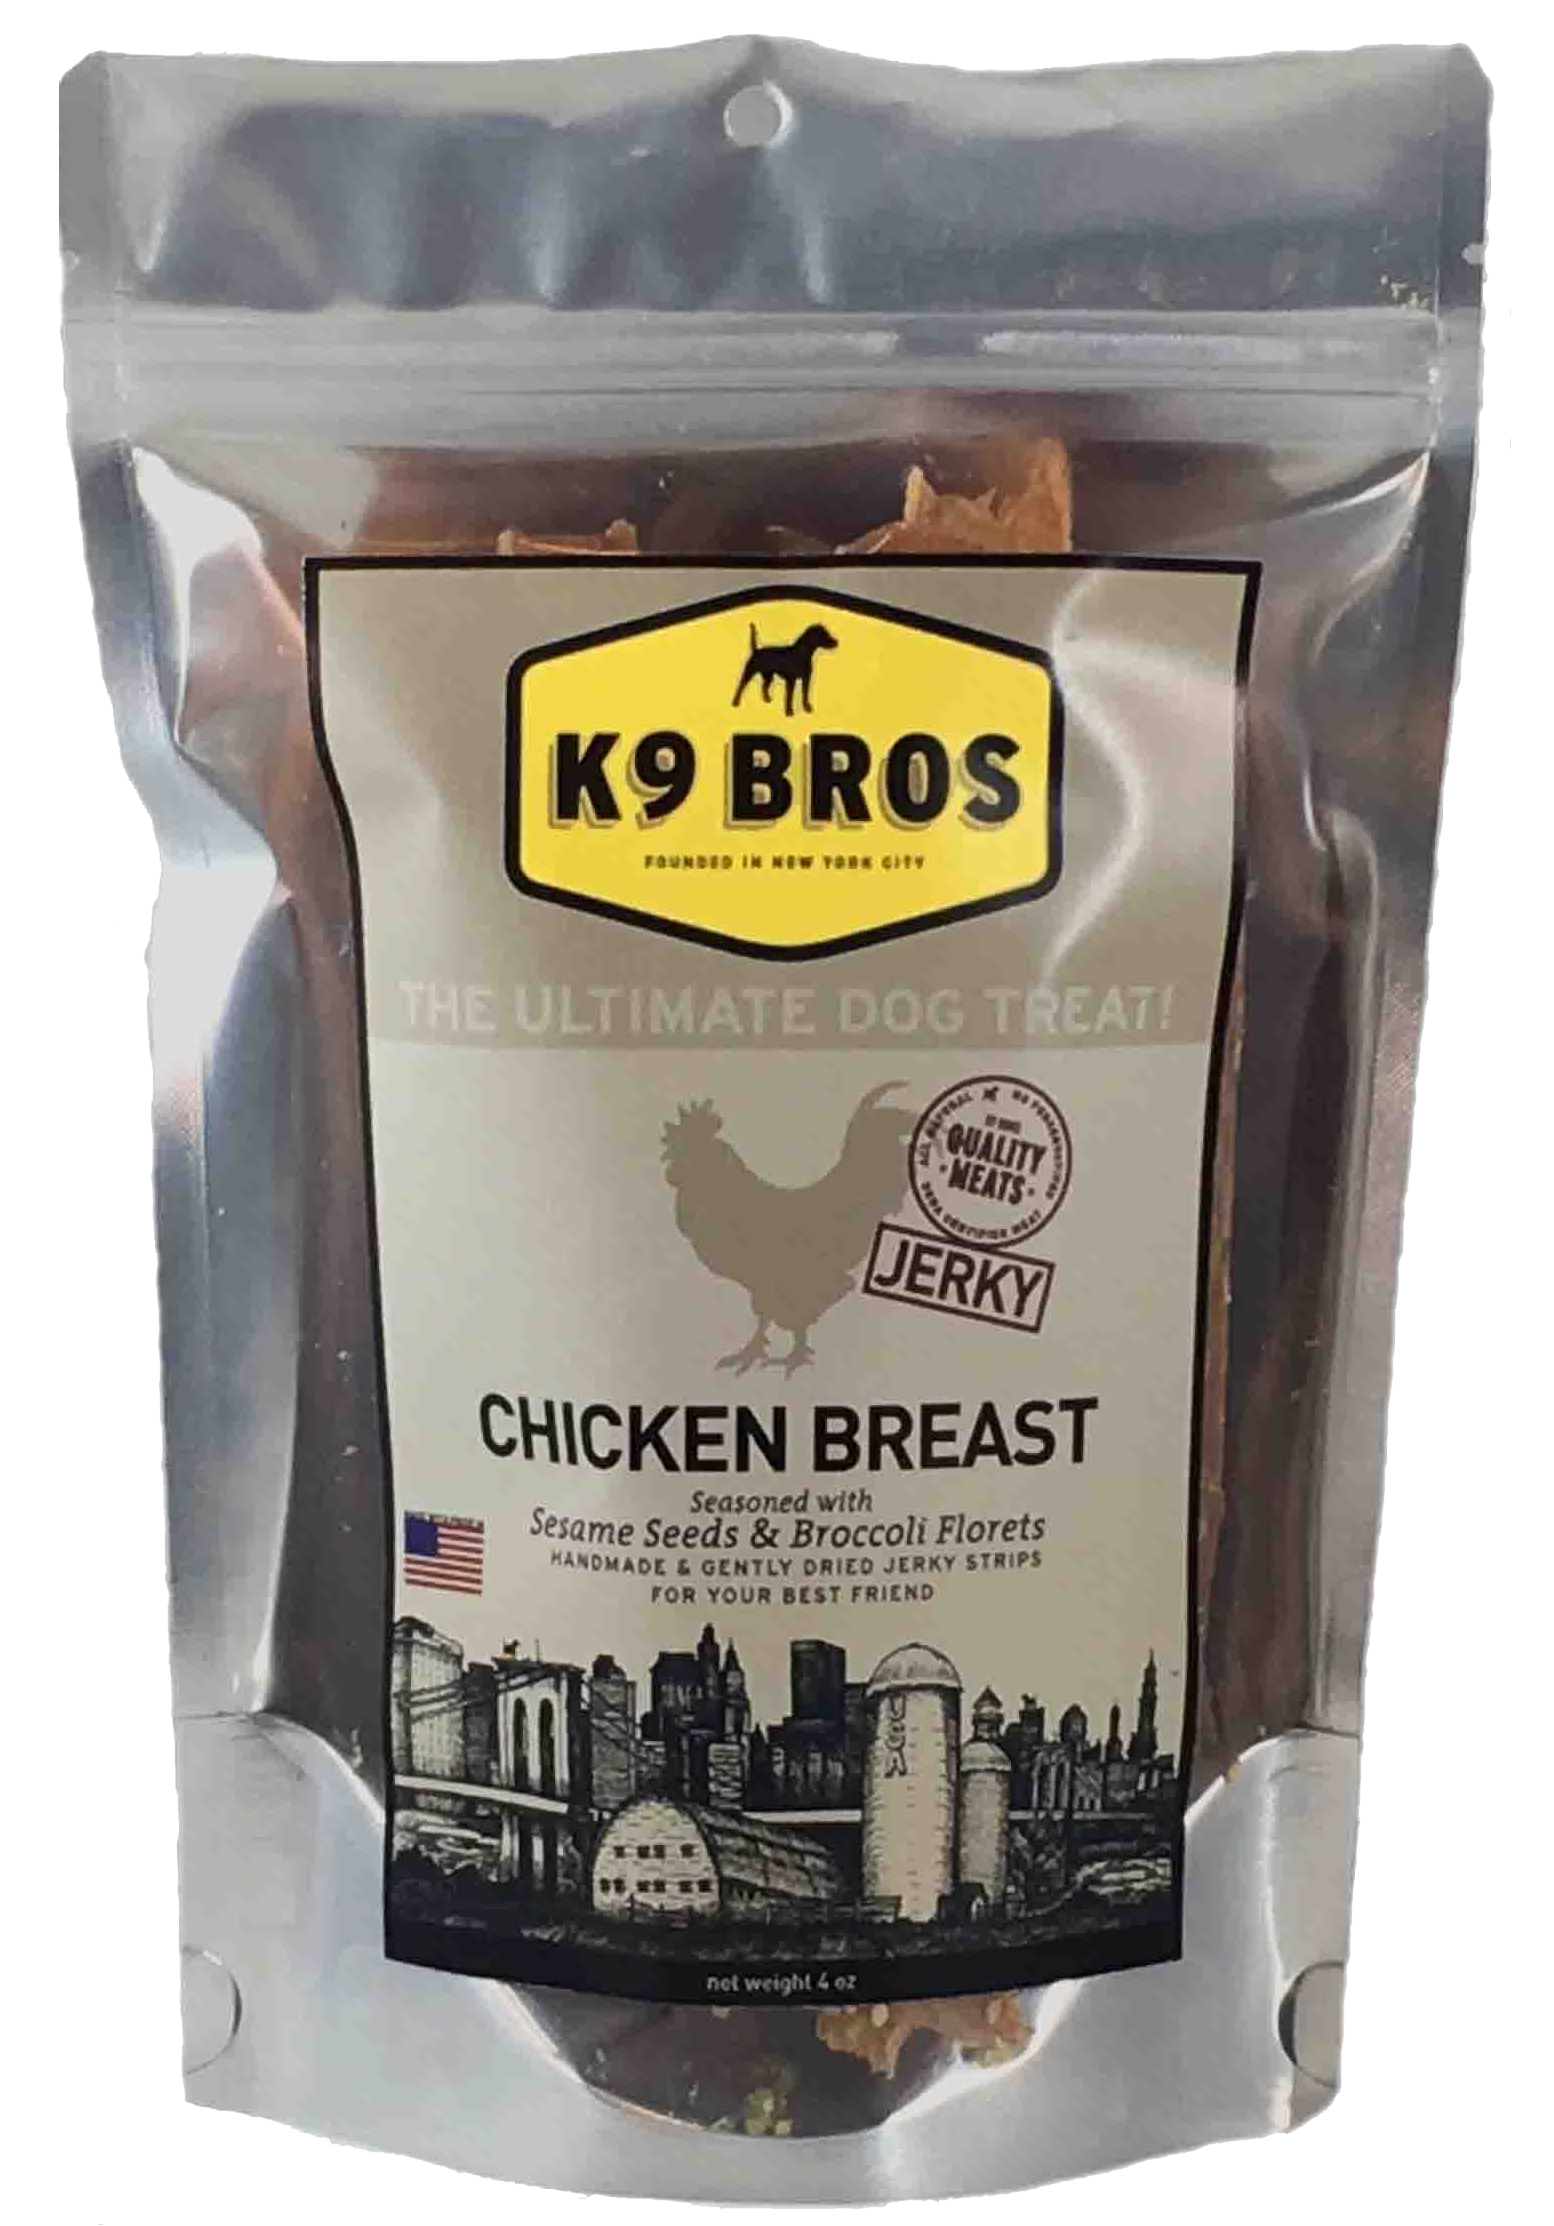 Chicken Breast[the ultimate dog treat]